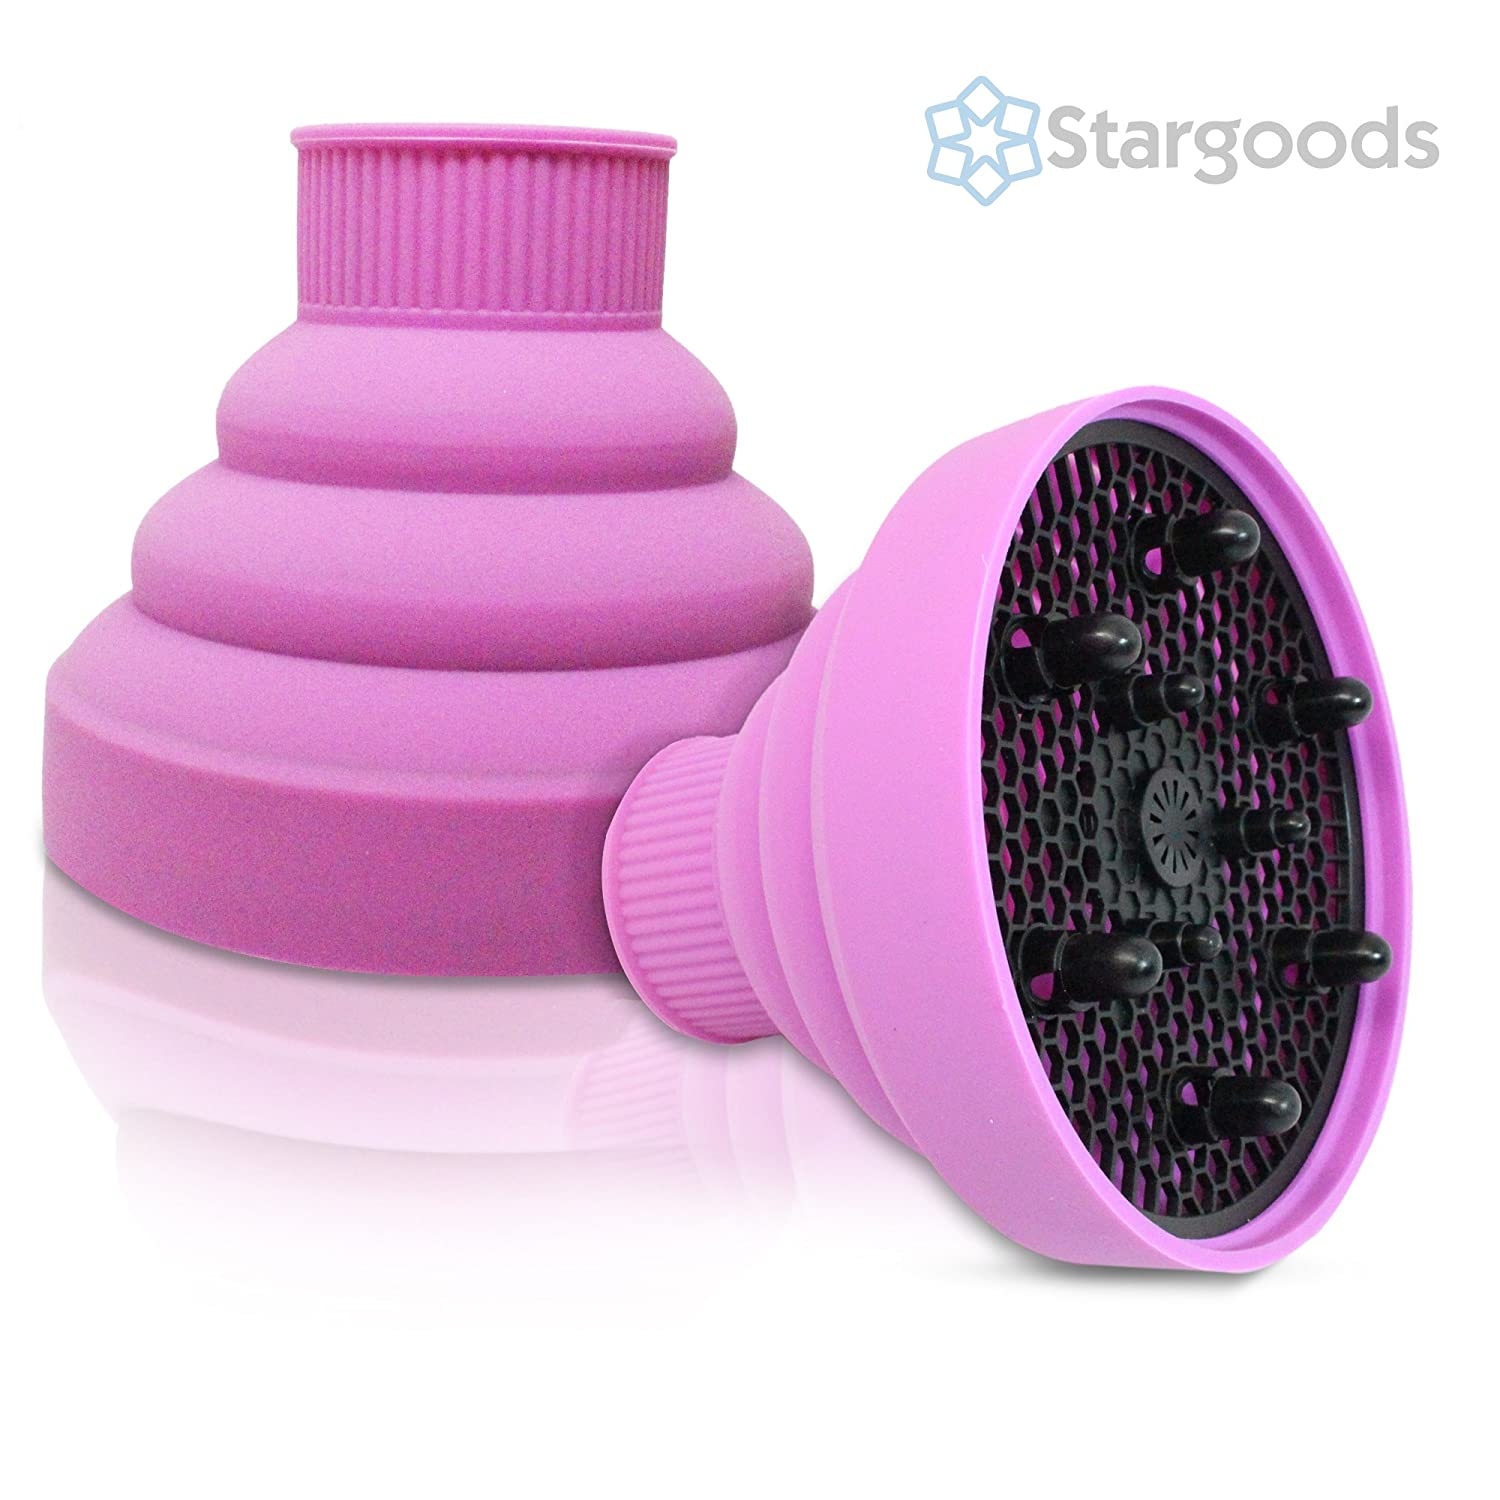 Stargoods Silicone Hair Dryer Diffuser Pink